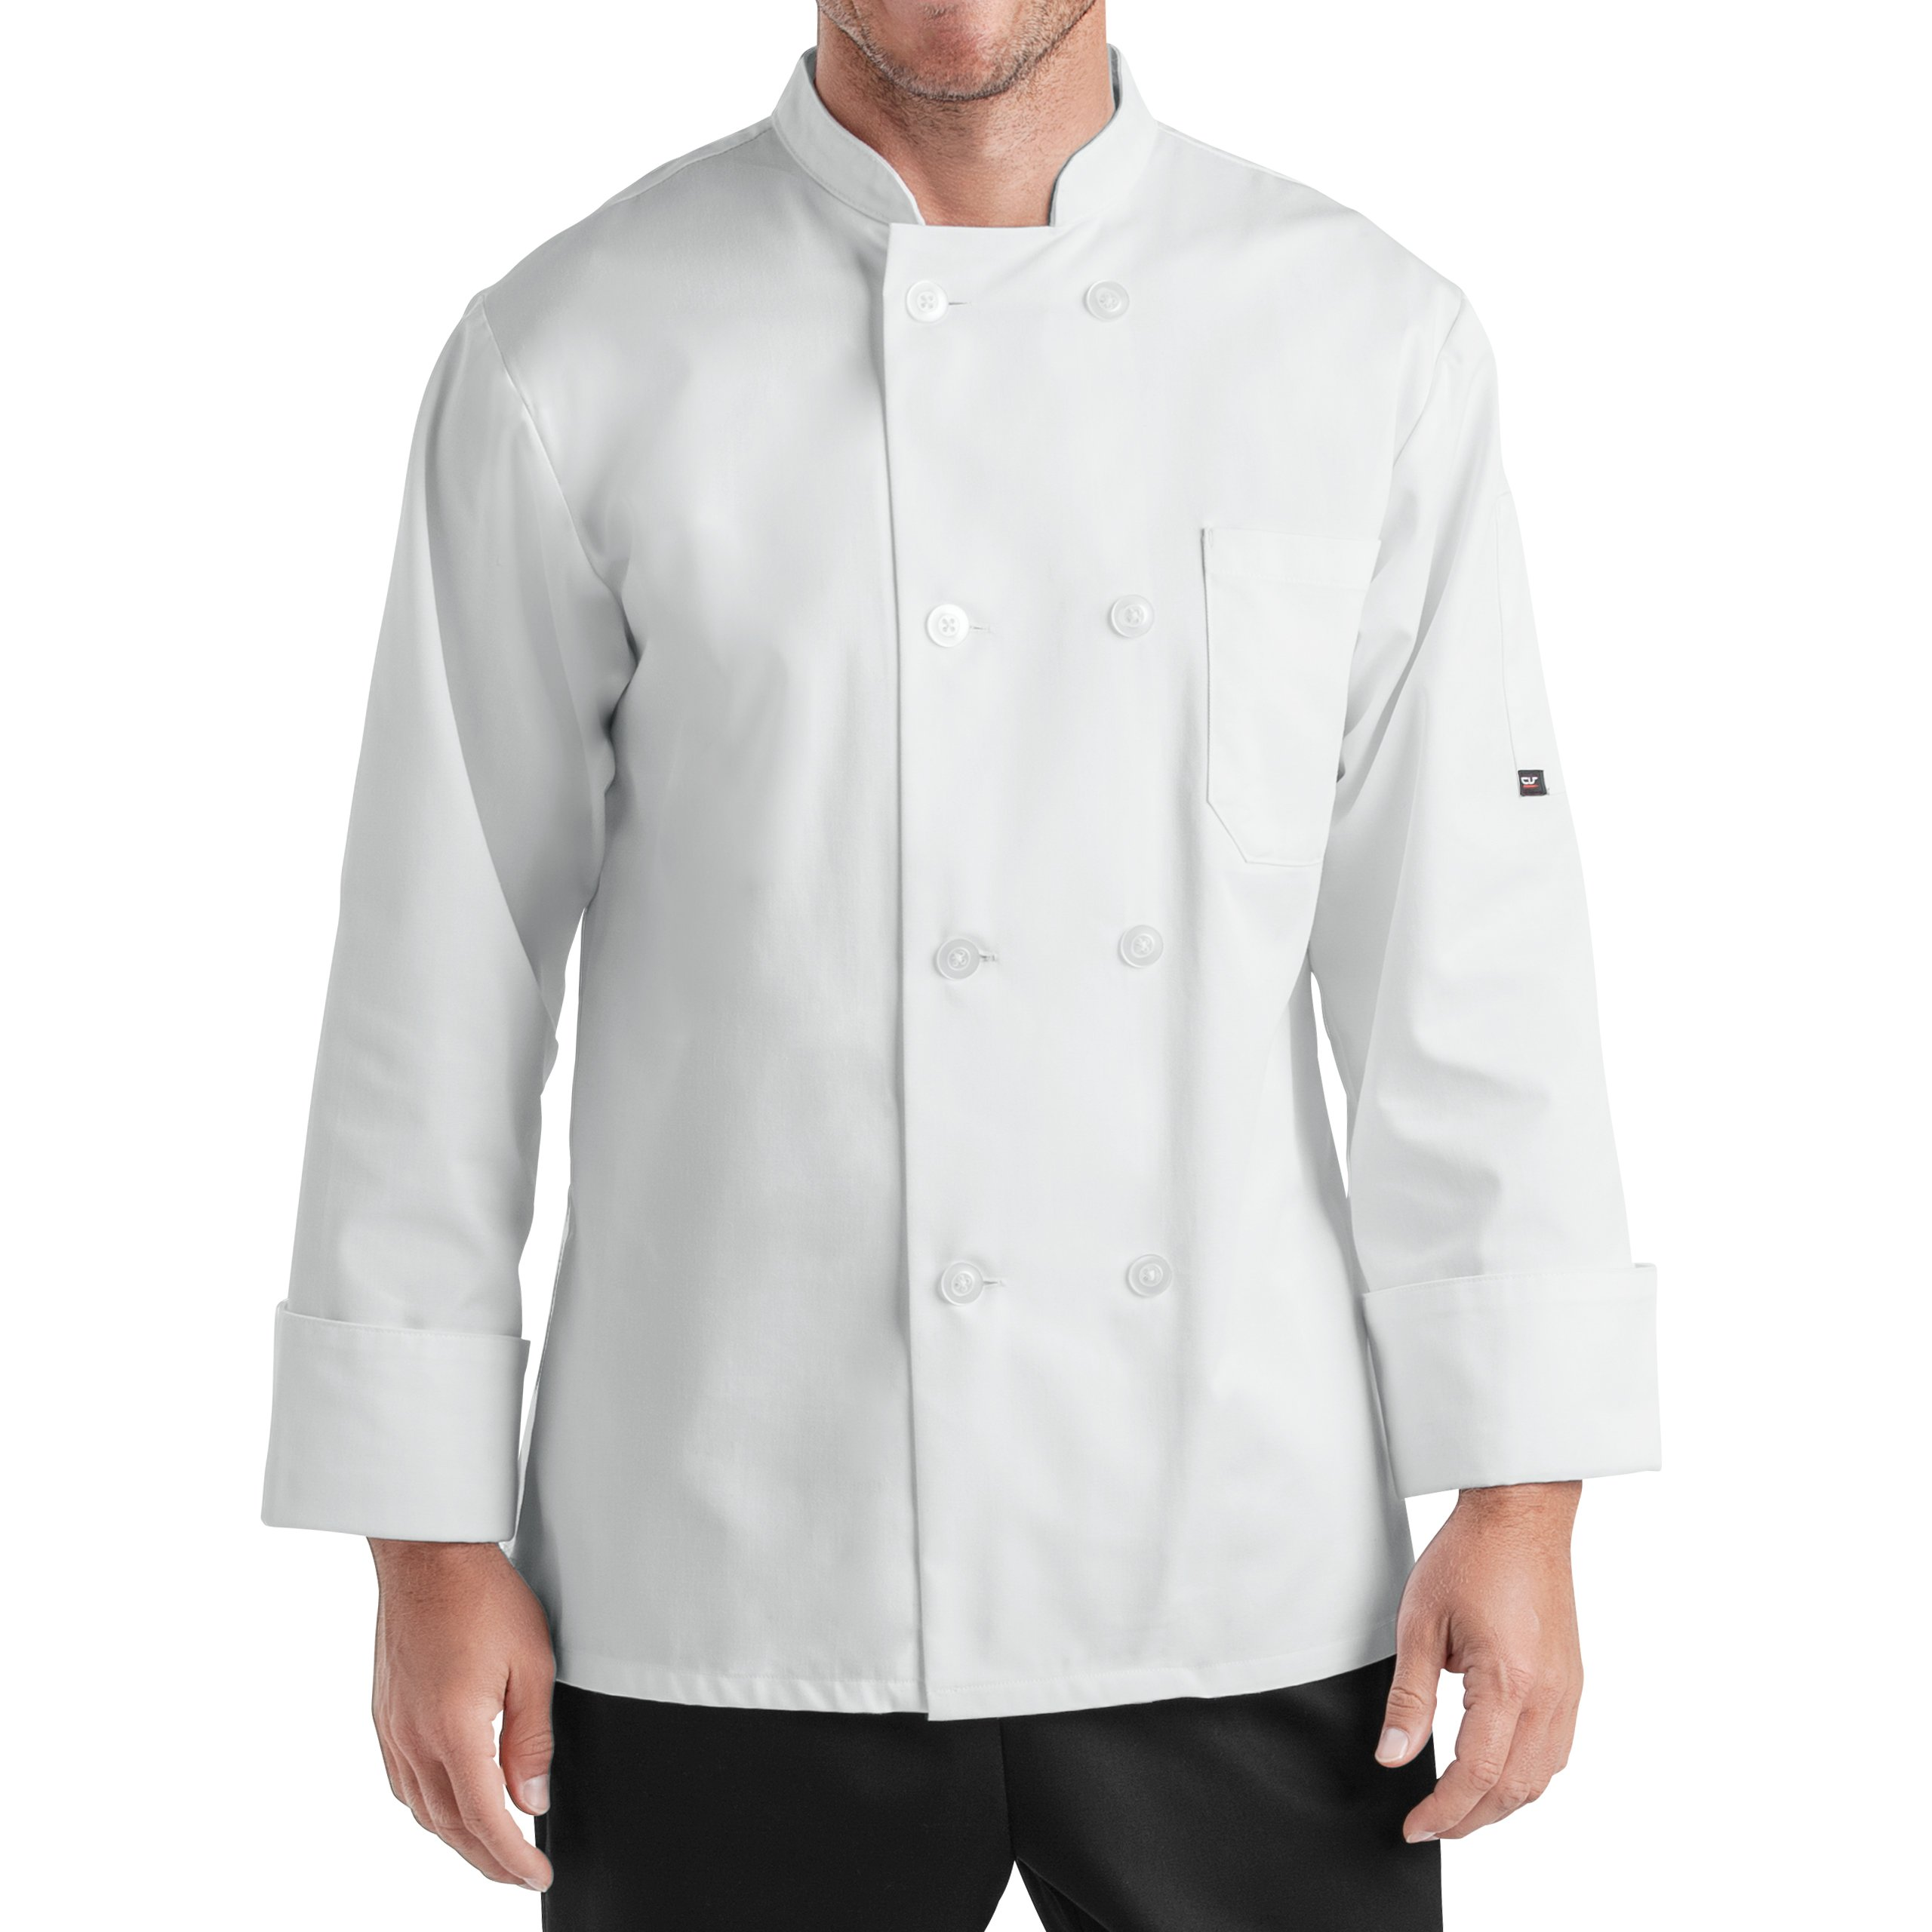 On The Line Men's Long Sleeve Chef Coat (S-2X, 2 Colors)